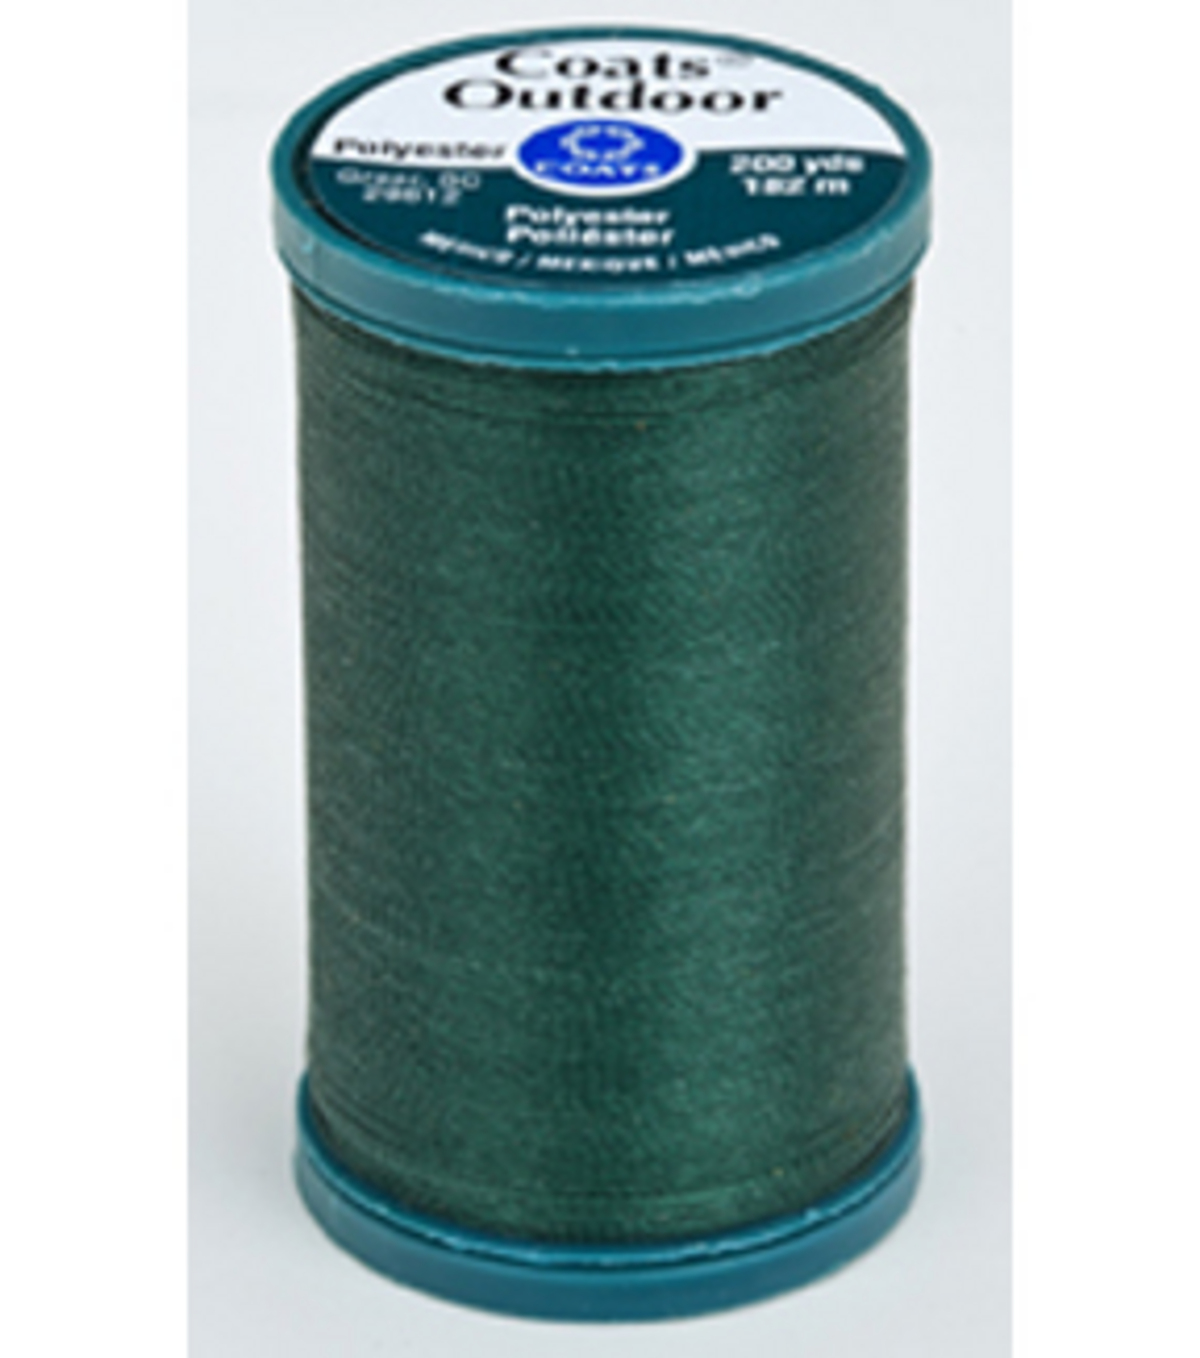 Coats & Clark Outdoor 200yd Thread, Coats Outdoor 200yd Scotts Gre